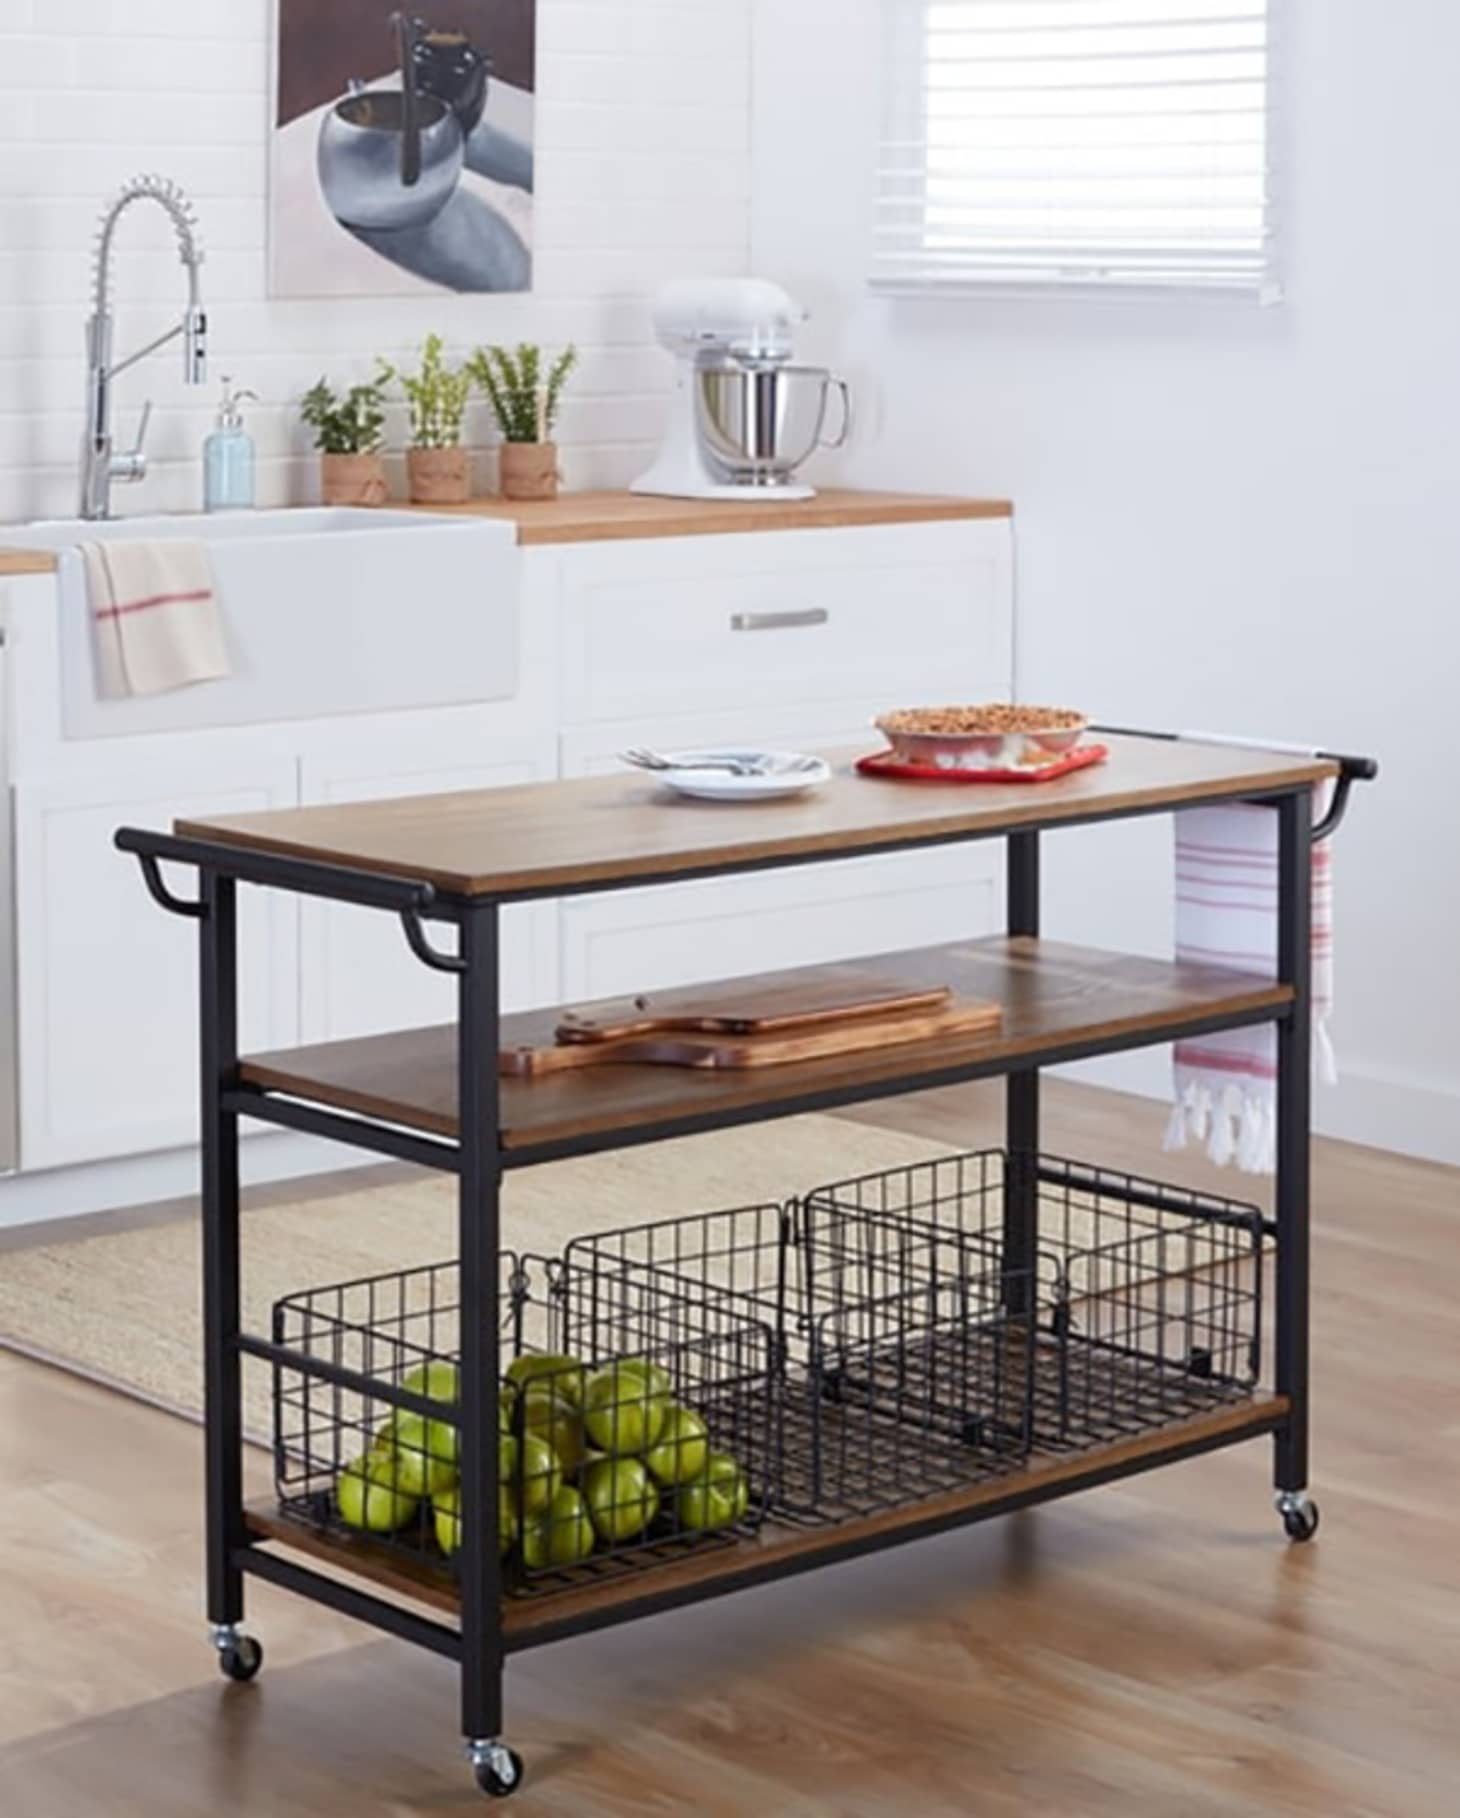 Miraculous Kitchen Island Carts Add Extra Storage And Surfaces Download Free Architecture Designs Scobabritishbridgeorg